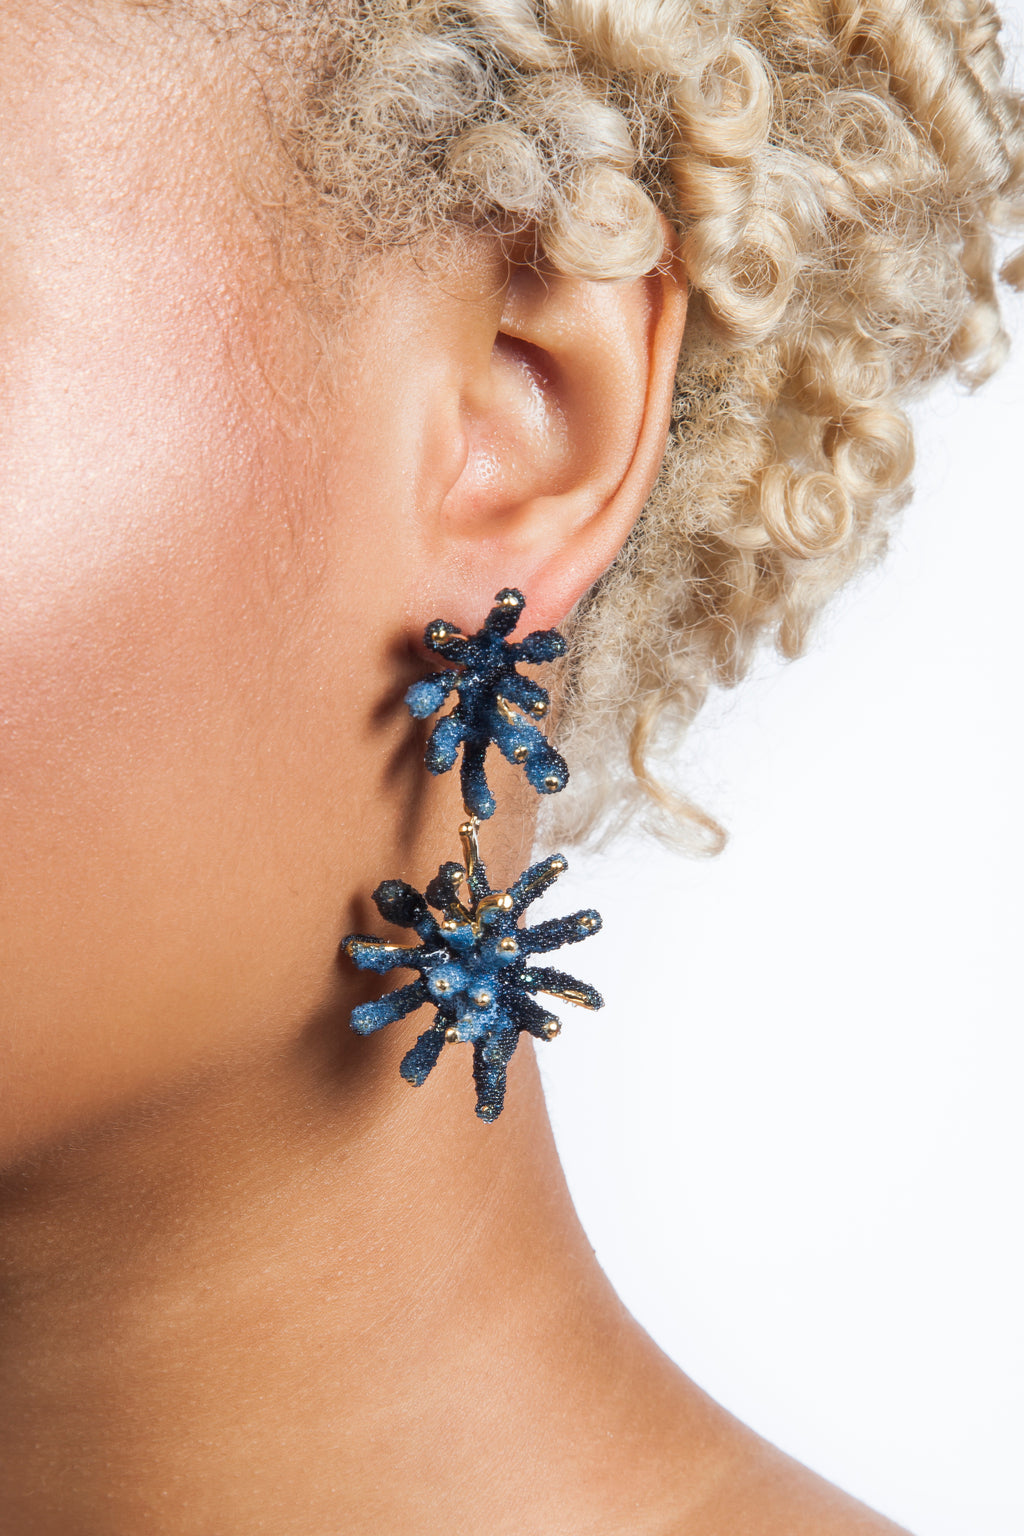 Iris Trends Pigmented Glass Cobalt Blue Coral Earrings by Aisegul Telli Turkey